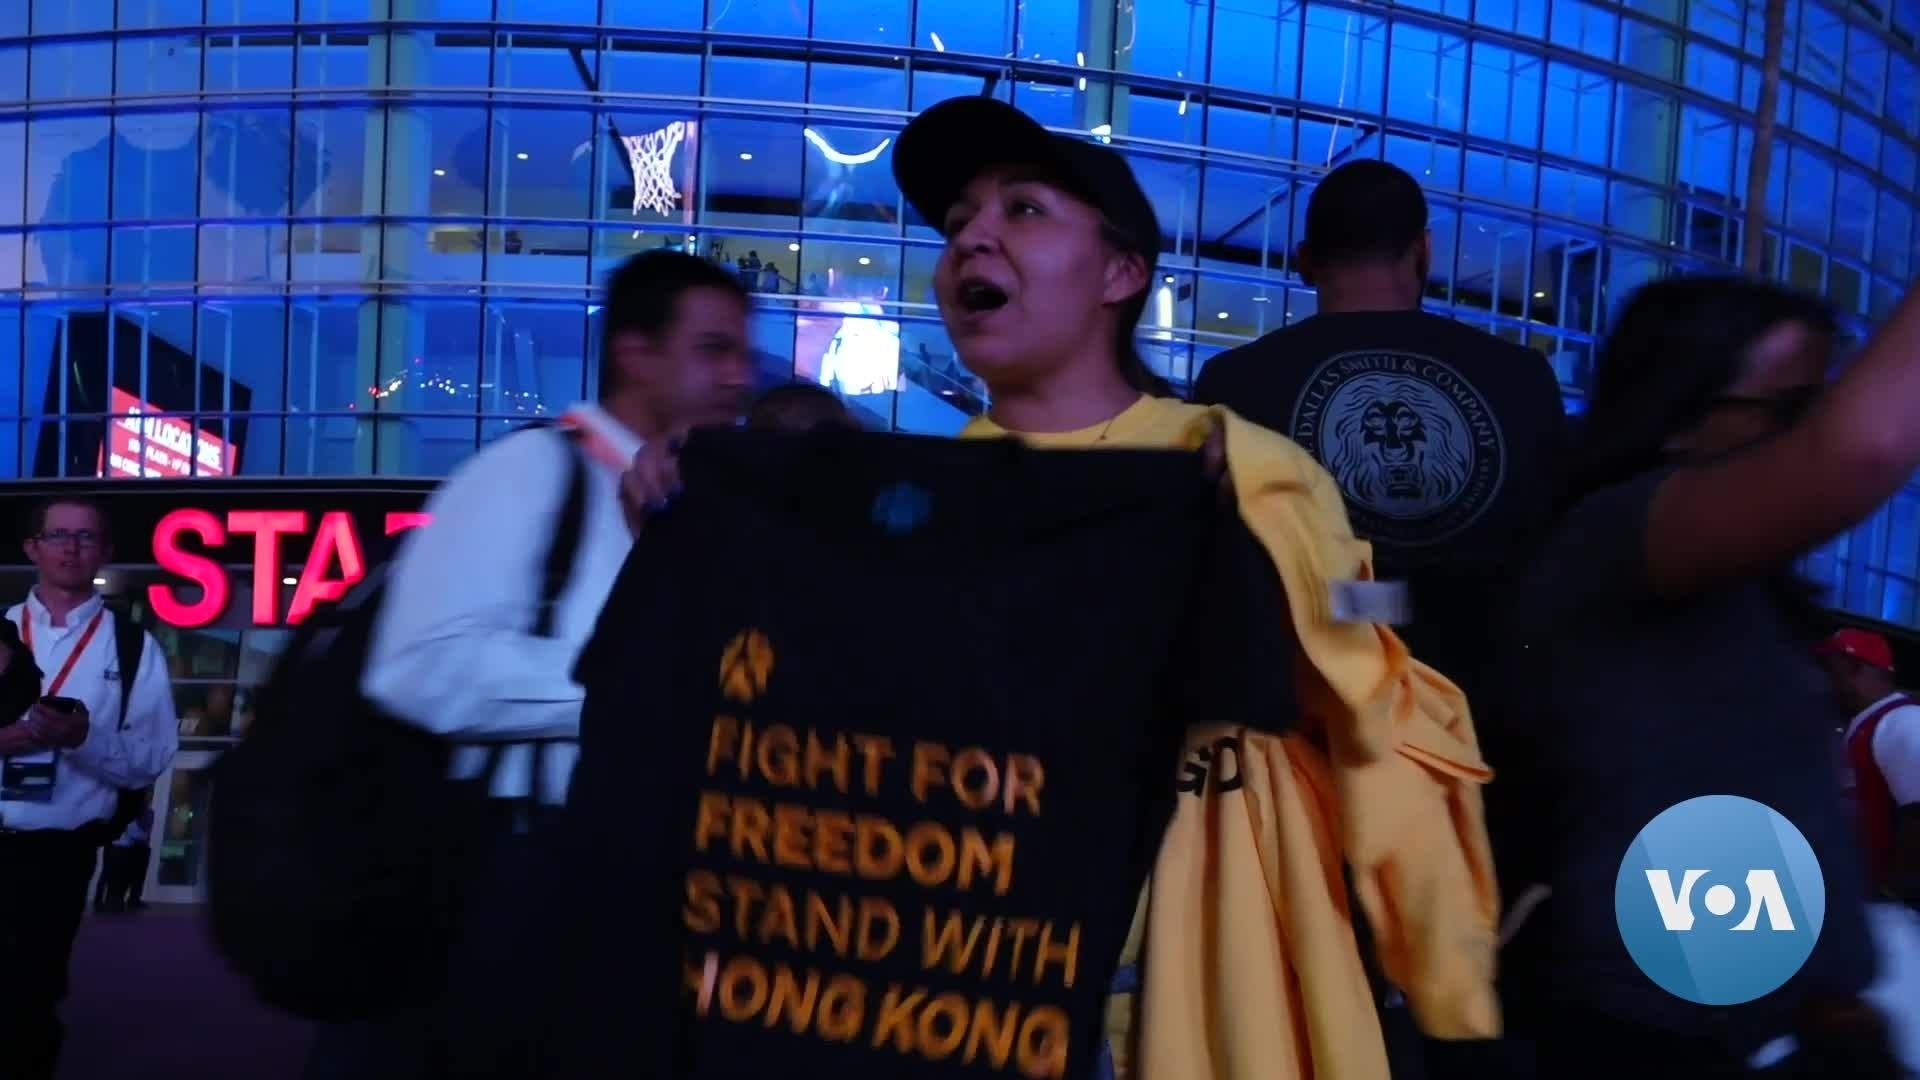 Hong Kong Supporters Try to Make a Statement at First NBA Game of the Season